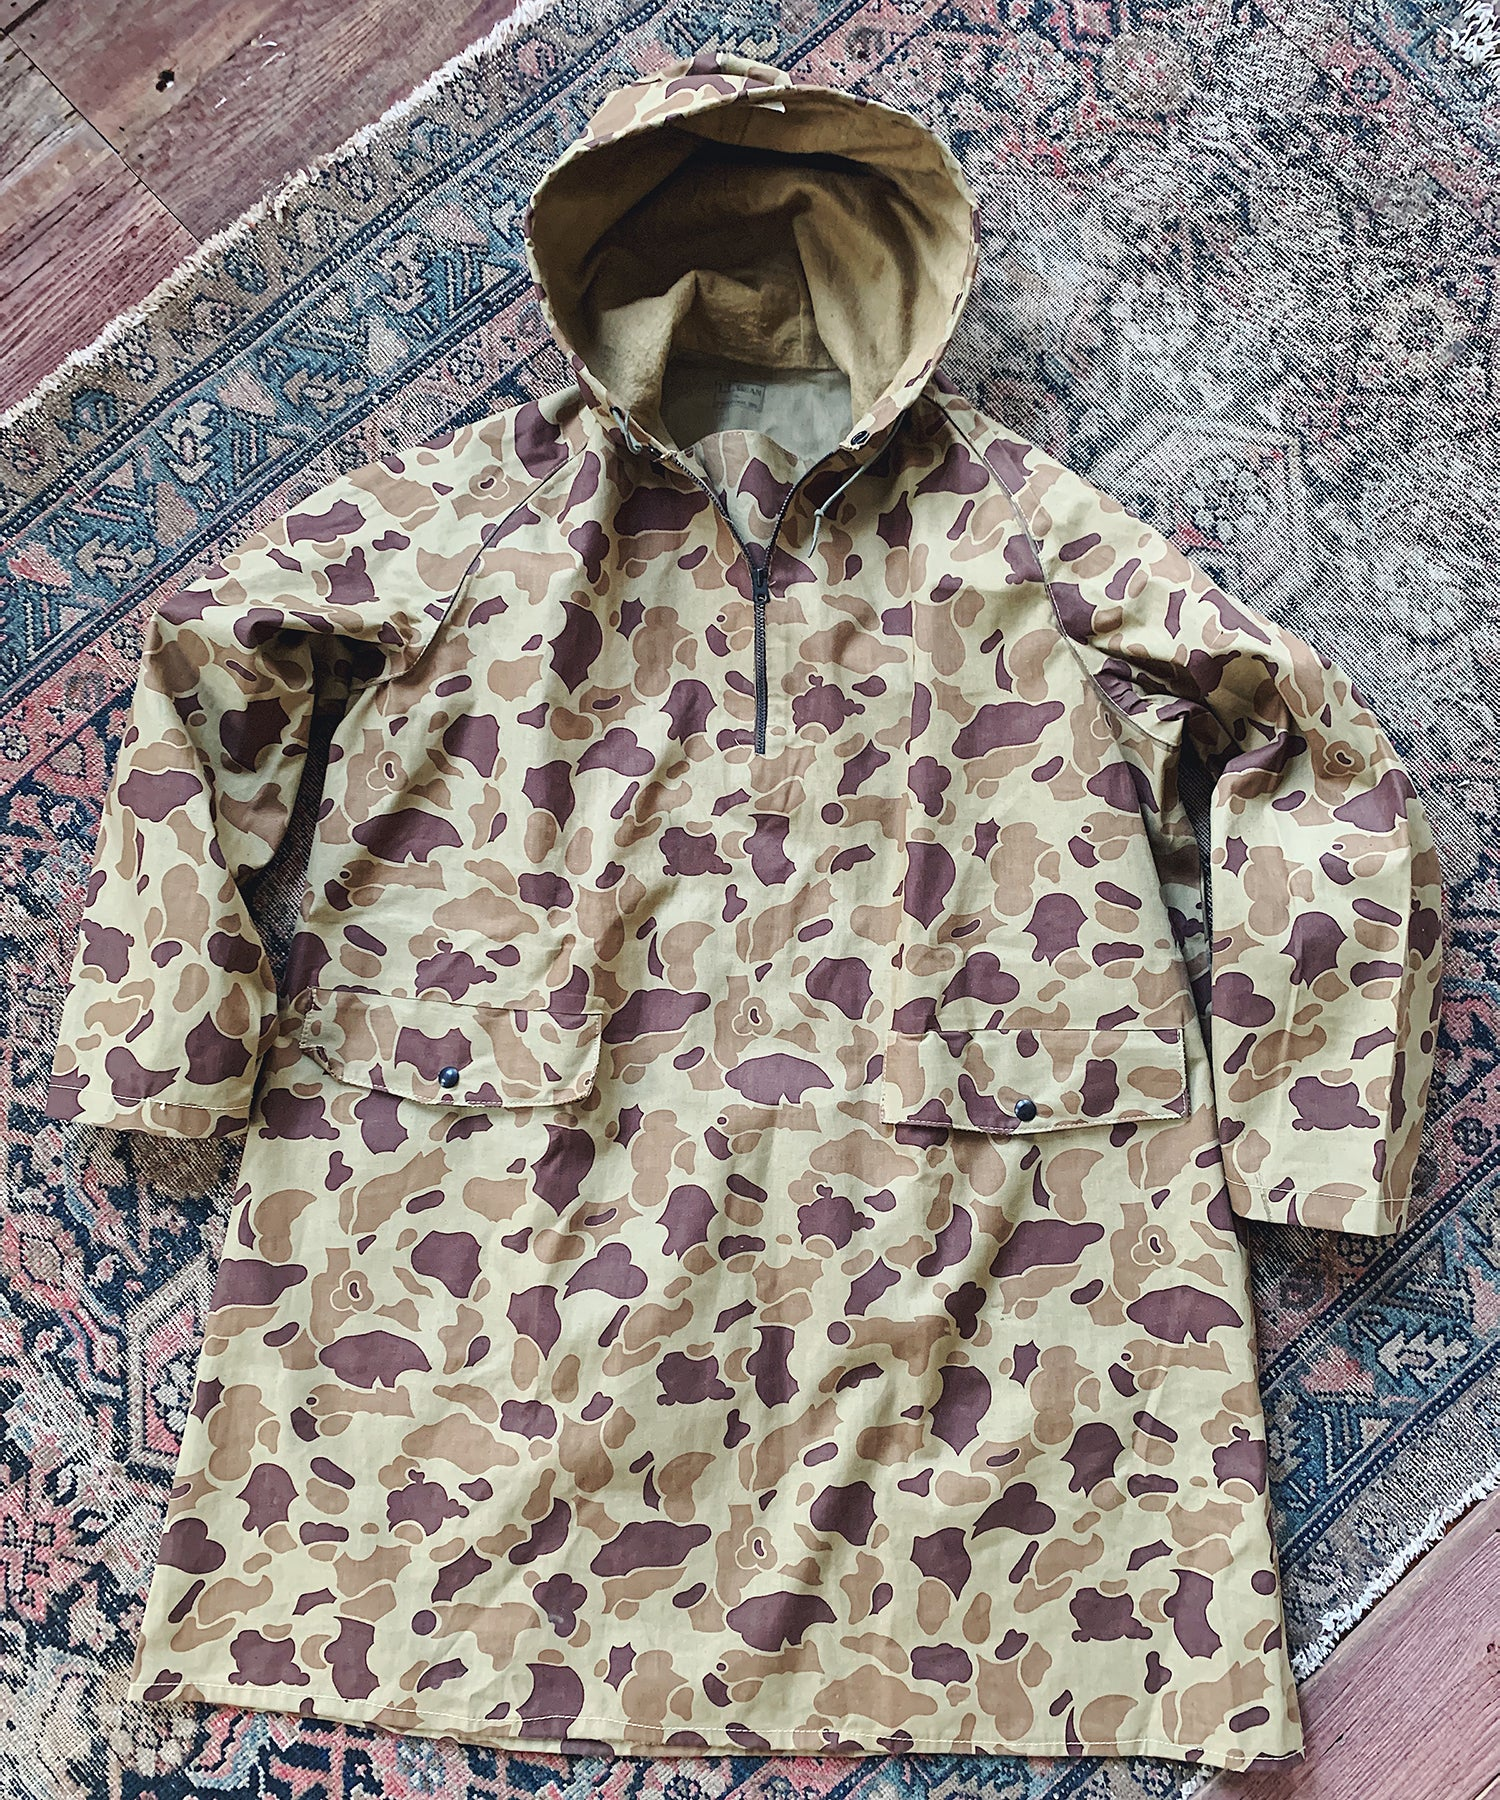 Item #27 - Todd Snyder x Wooden Sleepers 1940's Anorak in Duck Camo - SOLD OUT